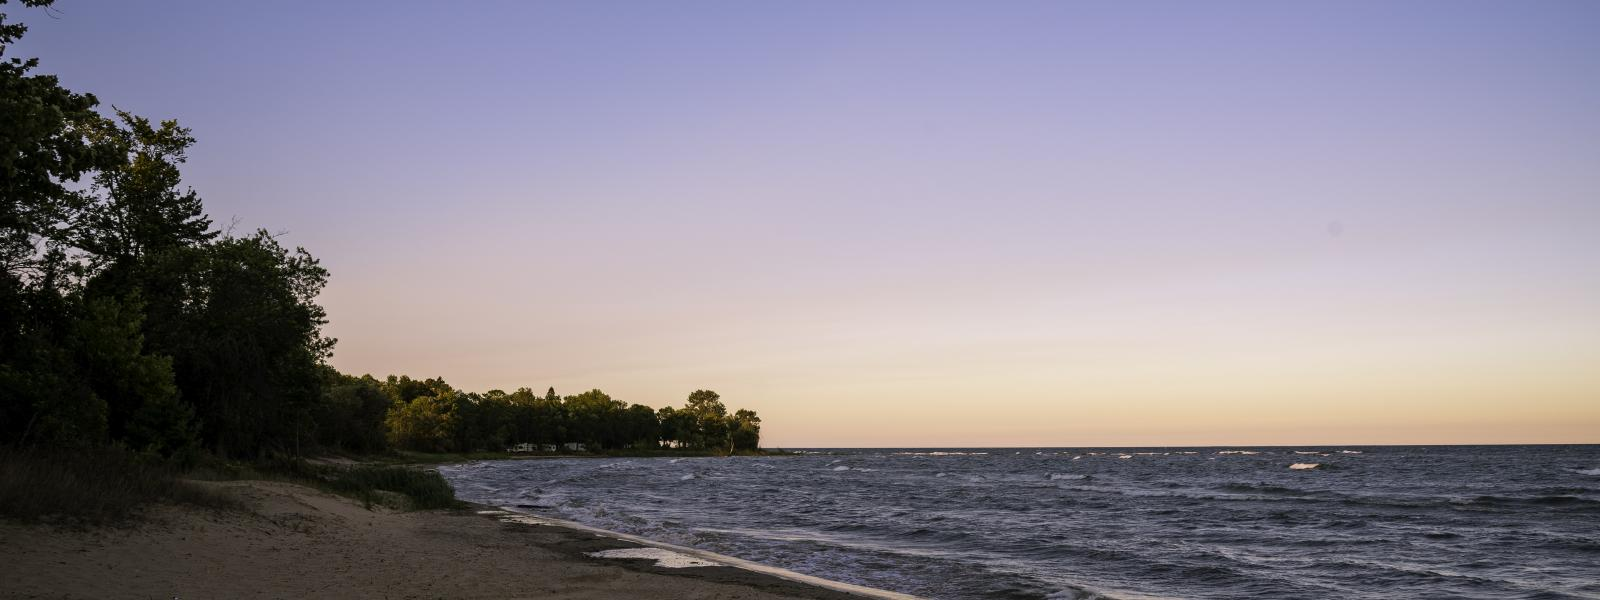 Shoreline of Lake Michigan